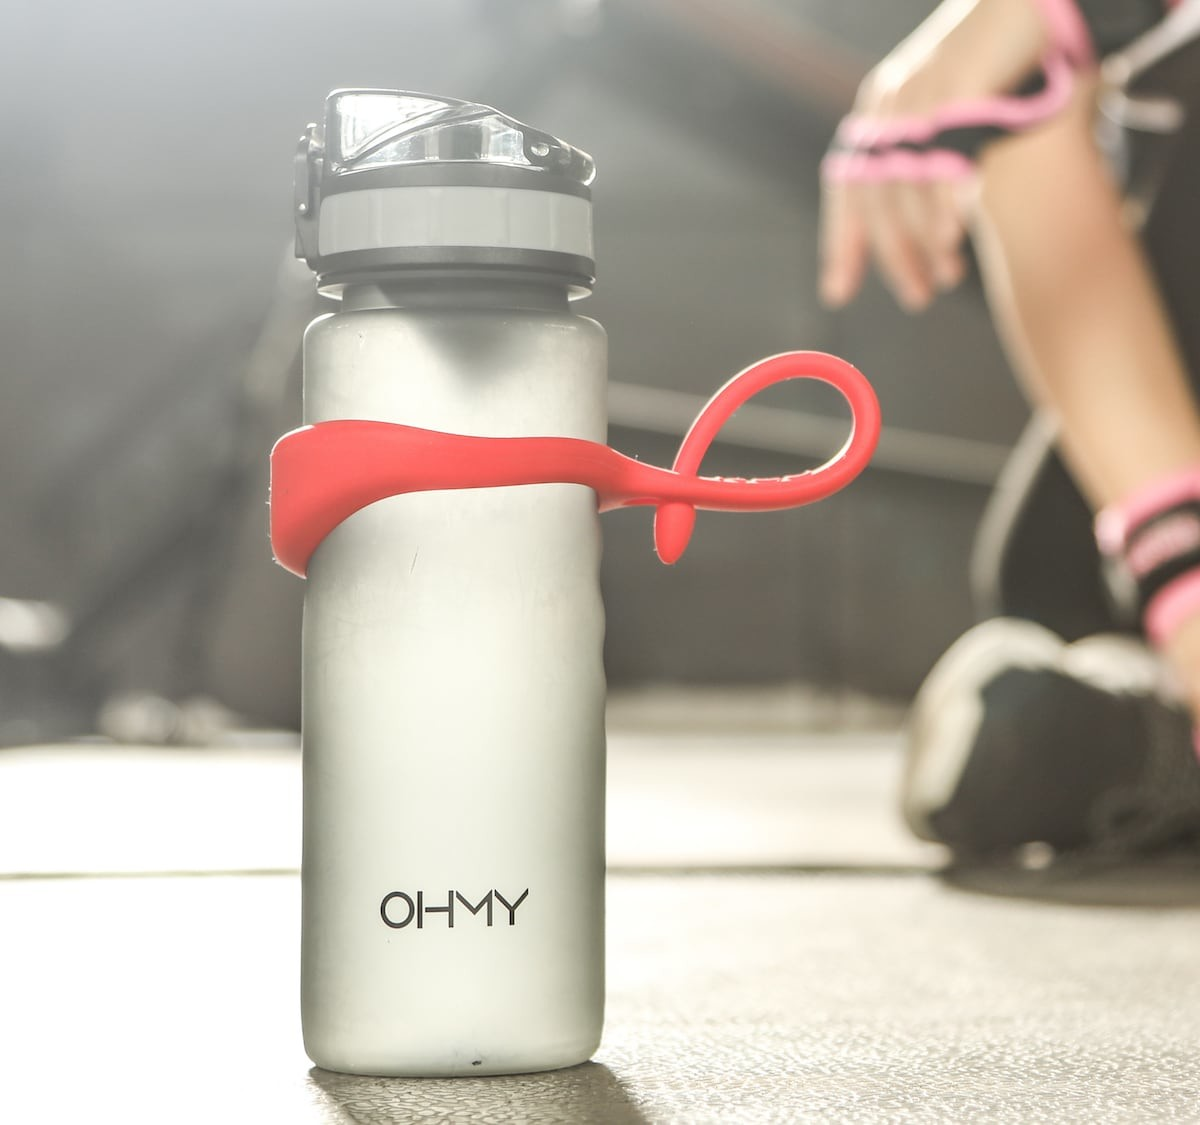 Life's Easy Neo Magnetic Bottle Holder water bottle strap clings on to any metal surface